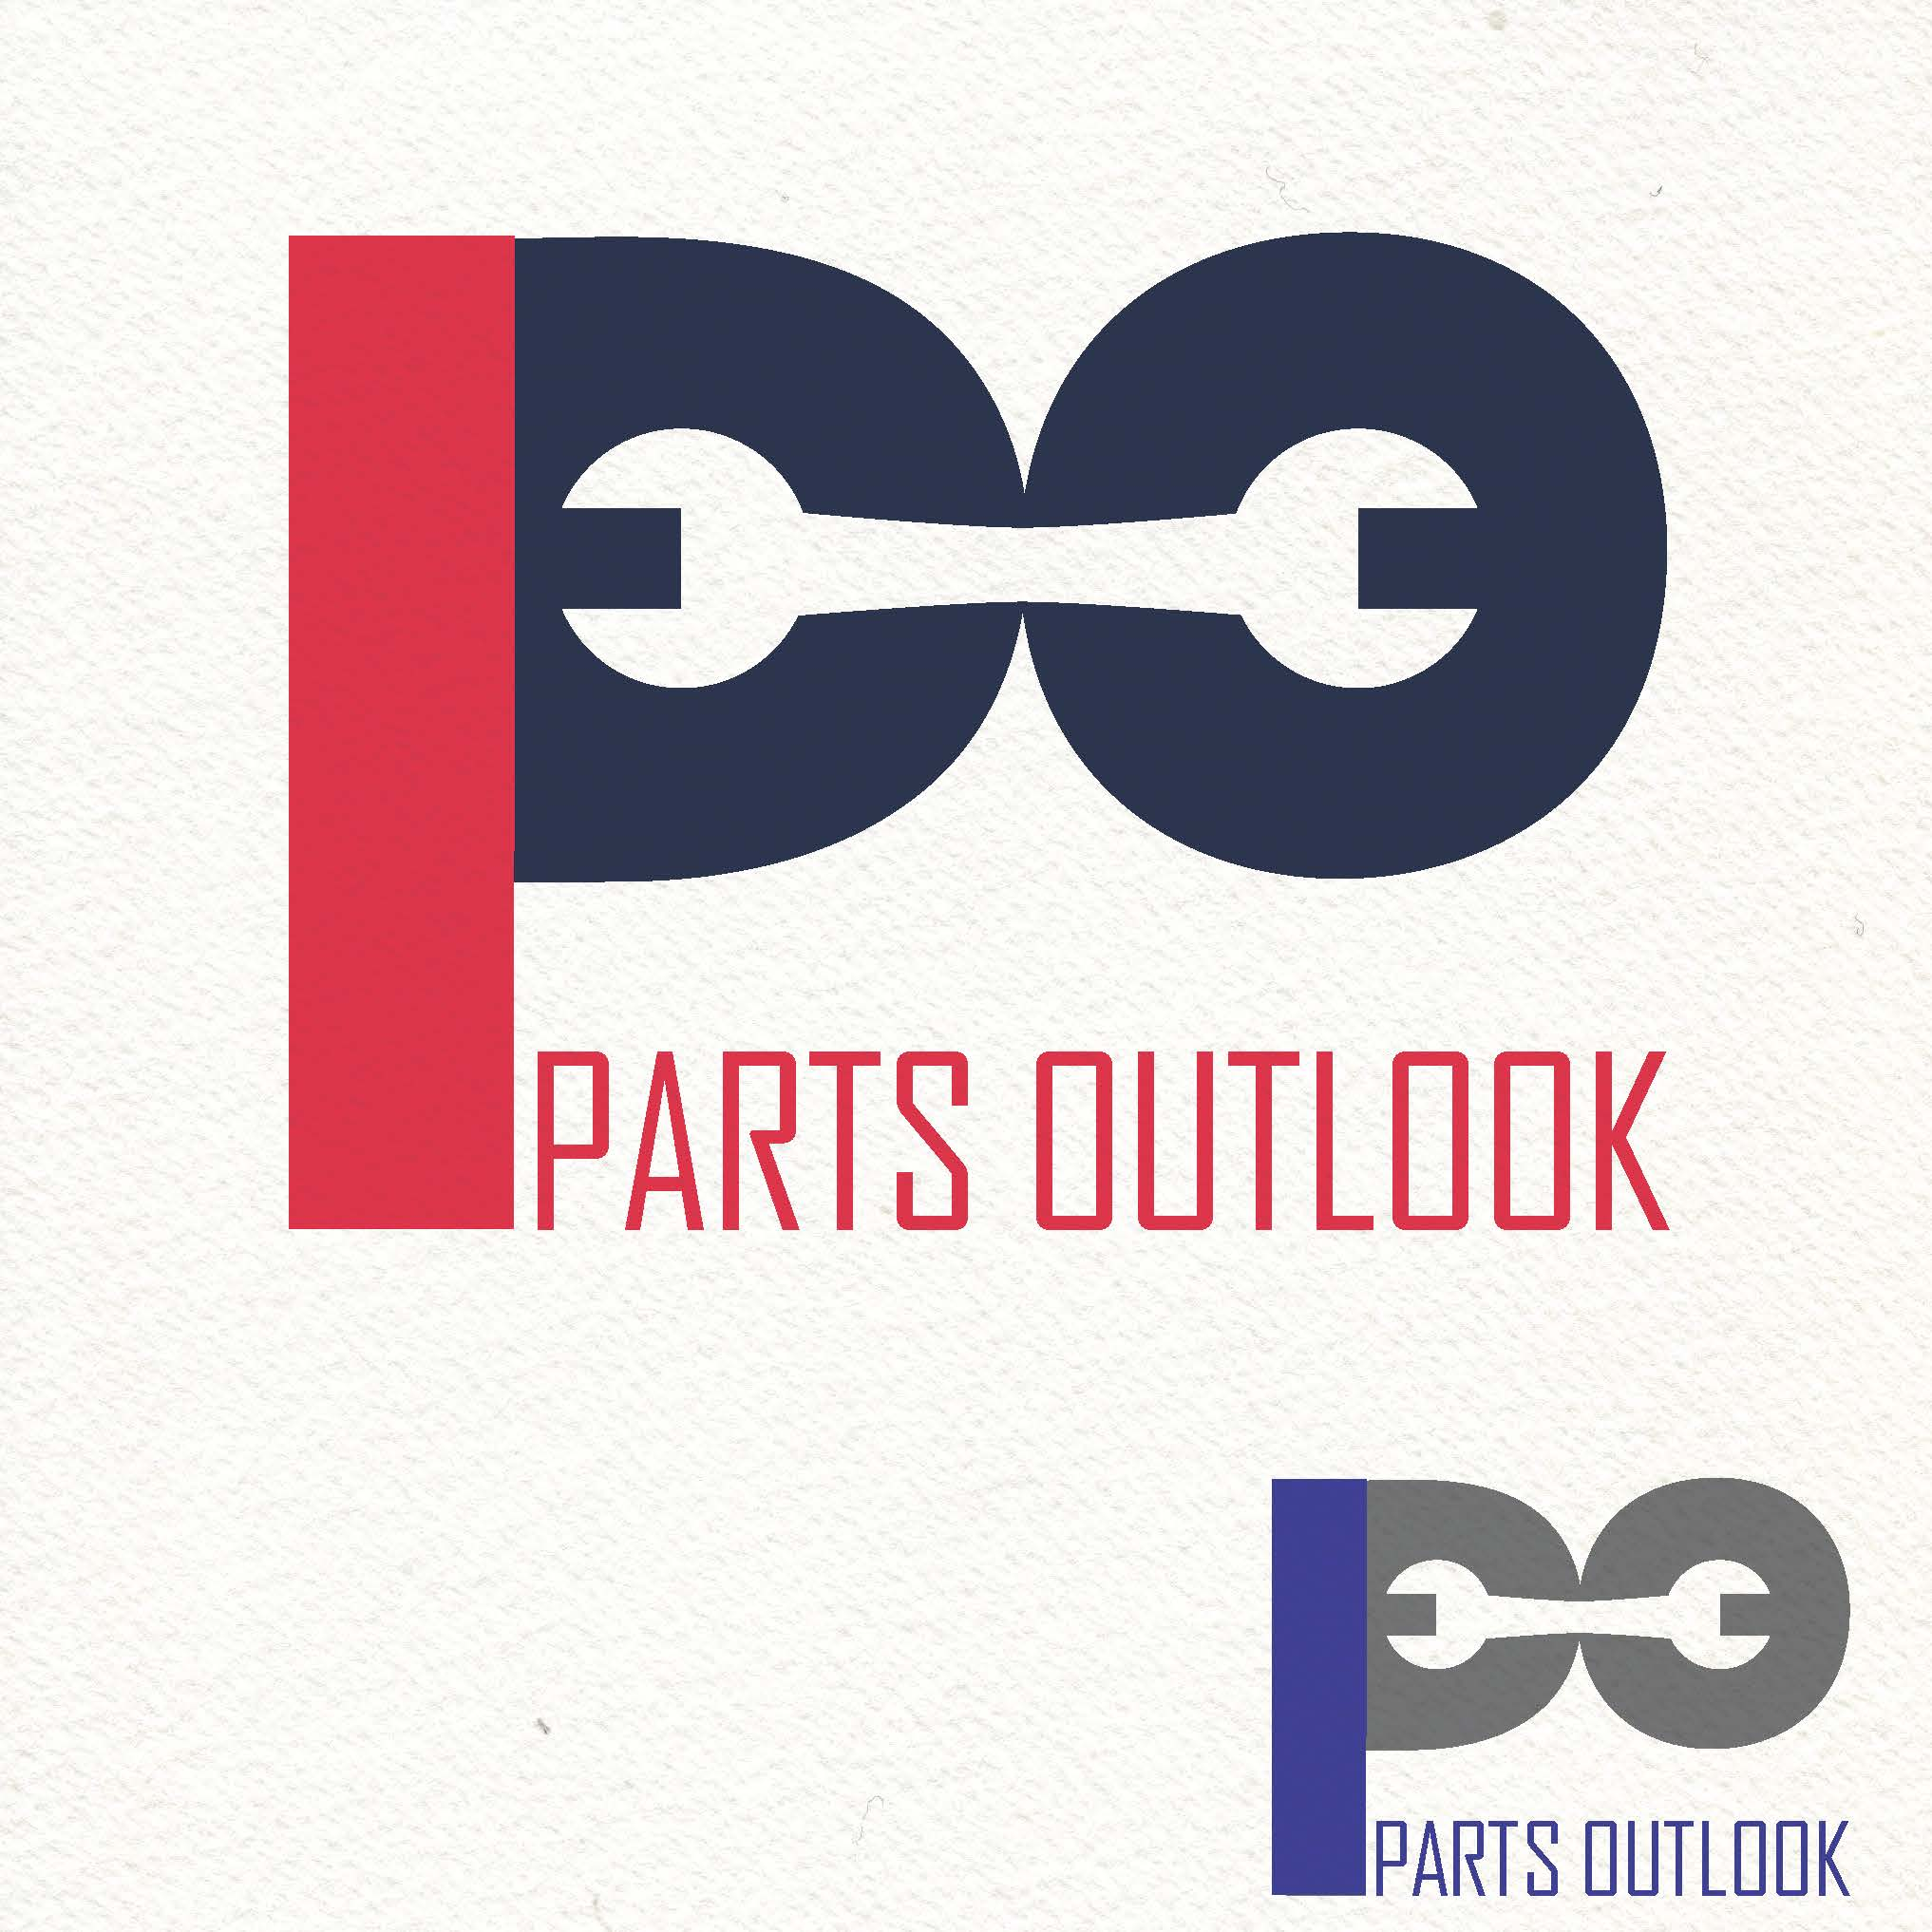 PARTS OUTLOOK logo